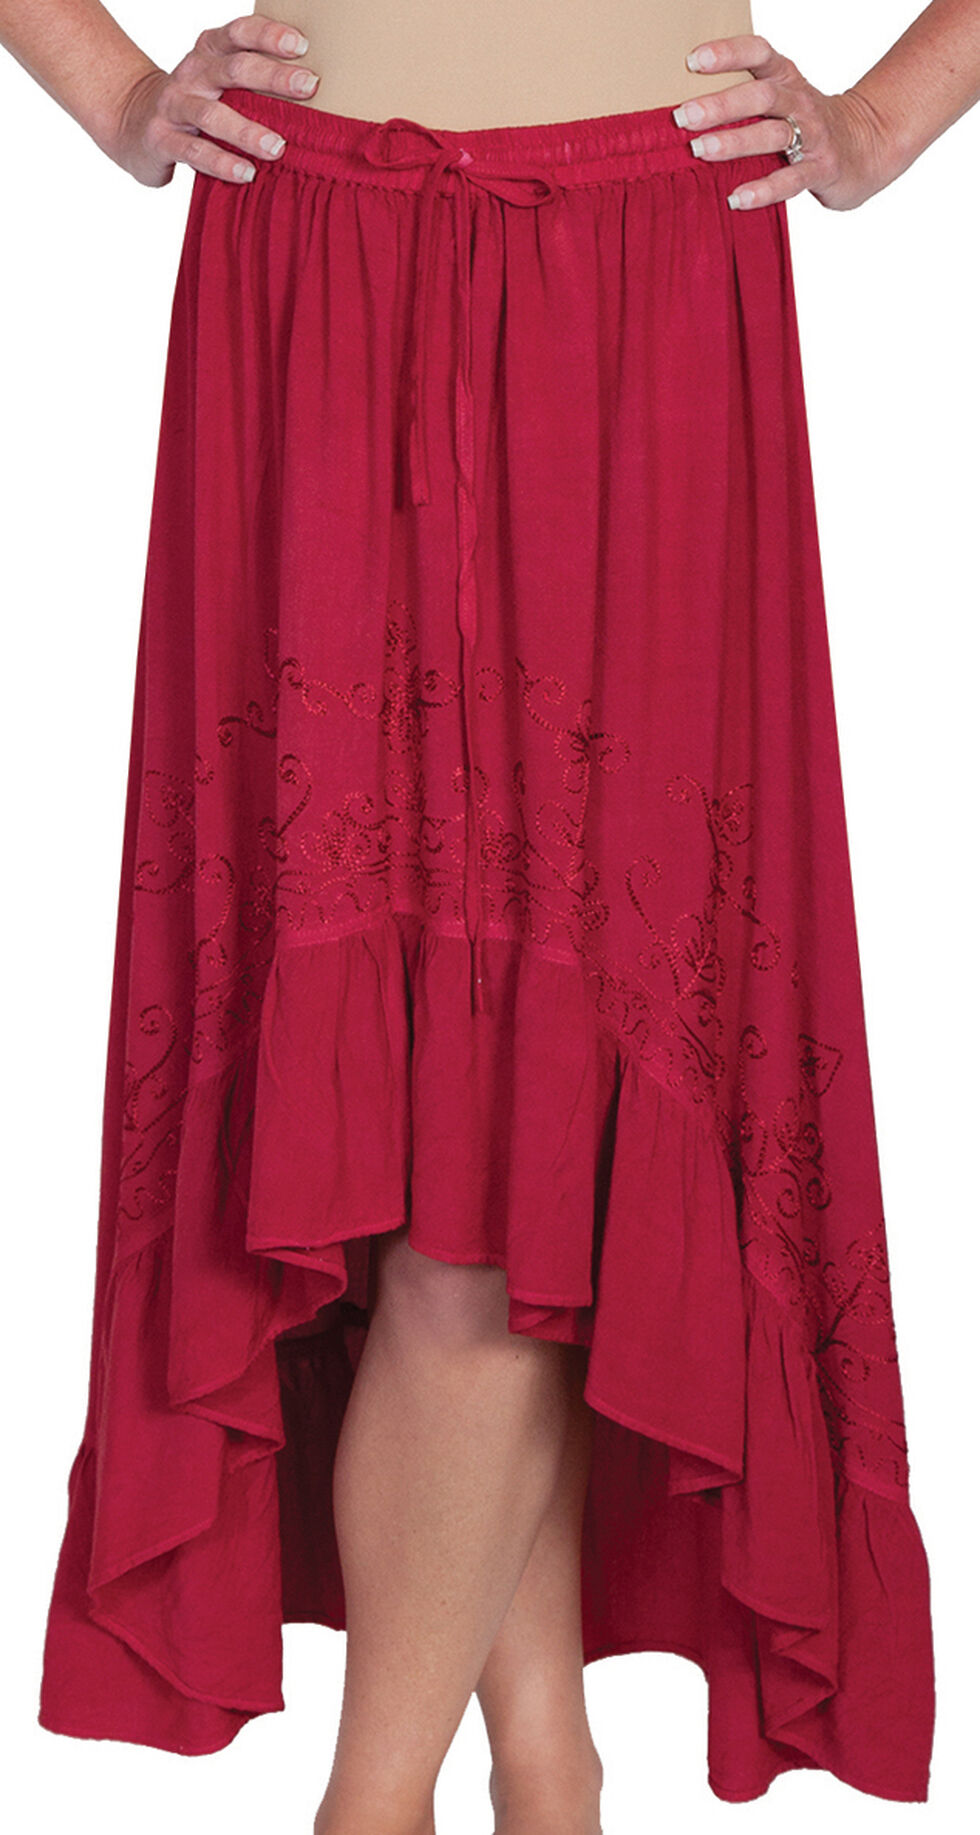 Scully Women's High-Low Maxi Skirt, Burgundy, hi-res